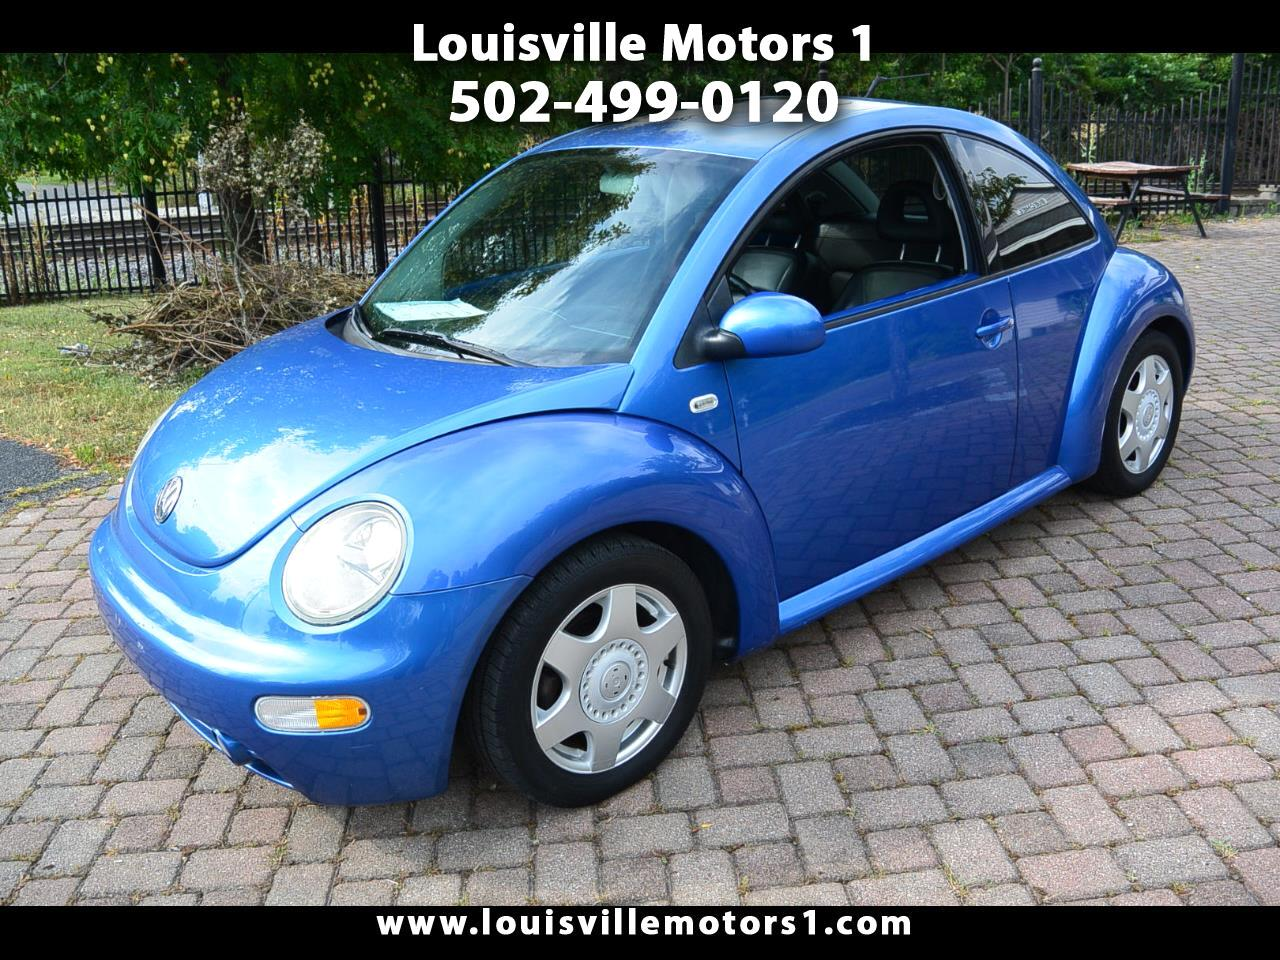 2001 Volkswagen New Beetle 2dr Cpe GLS TDI Manual